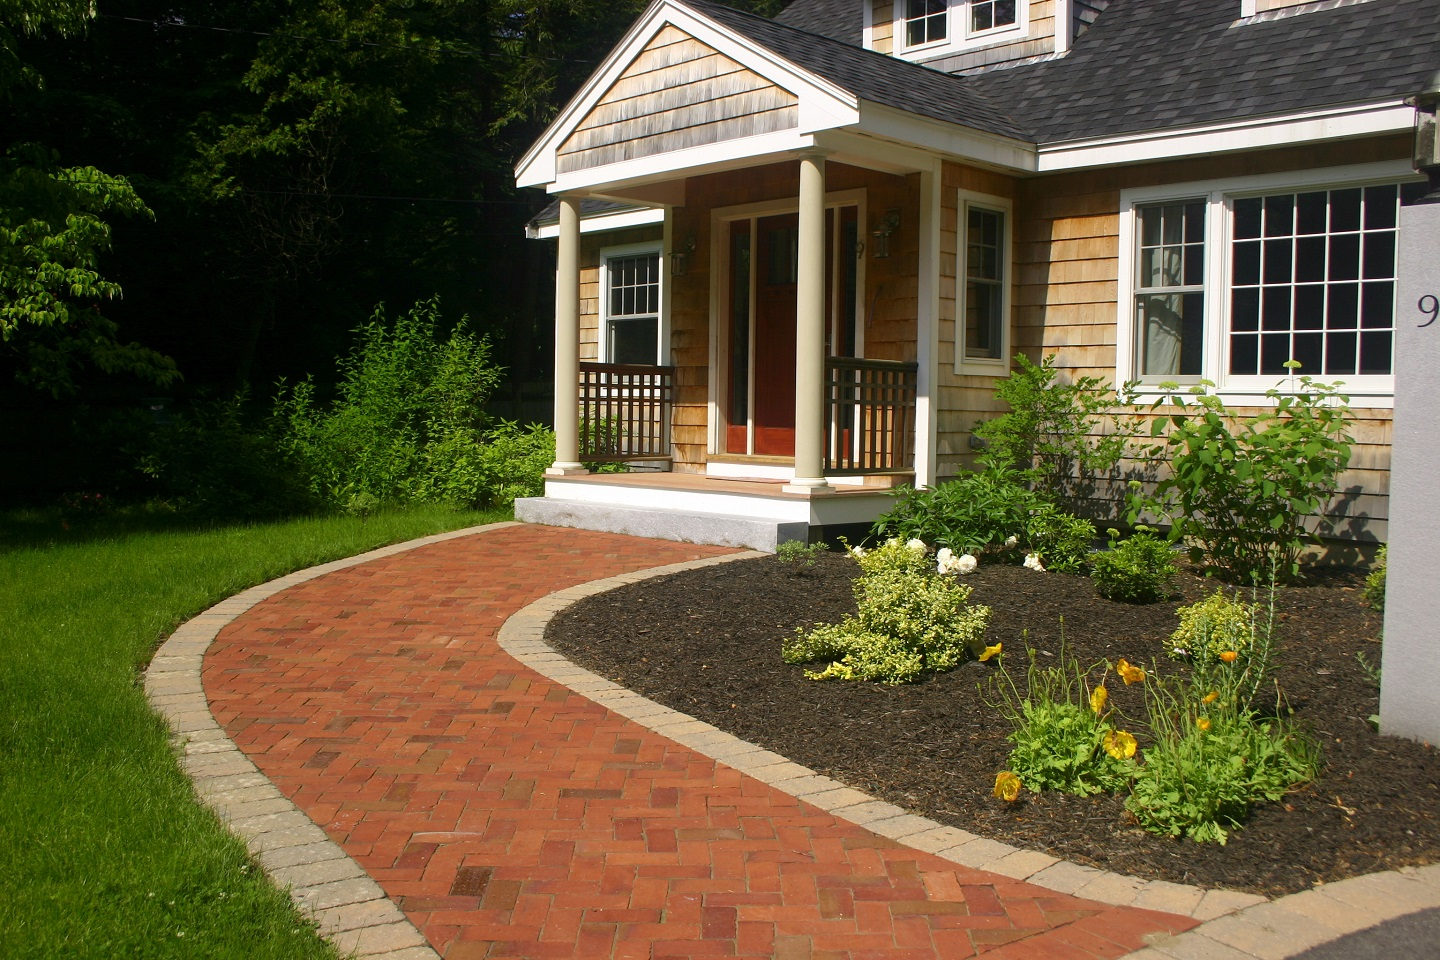 Driveway pavers and walkway pavers in Newton, MA